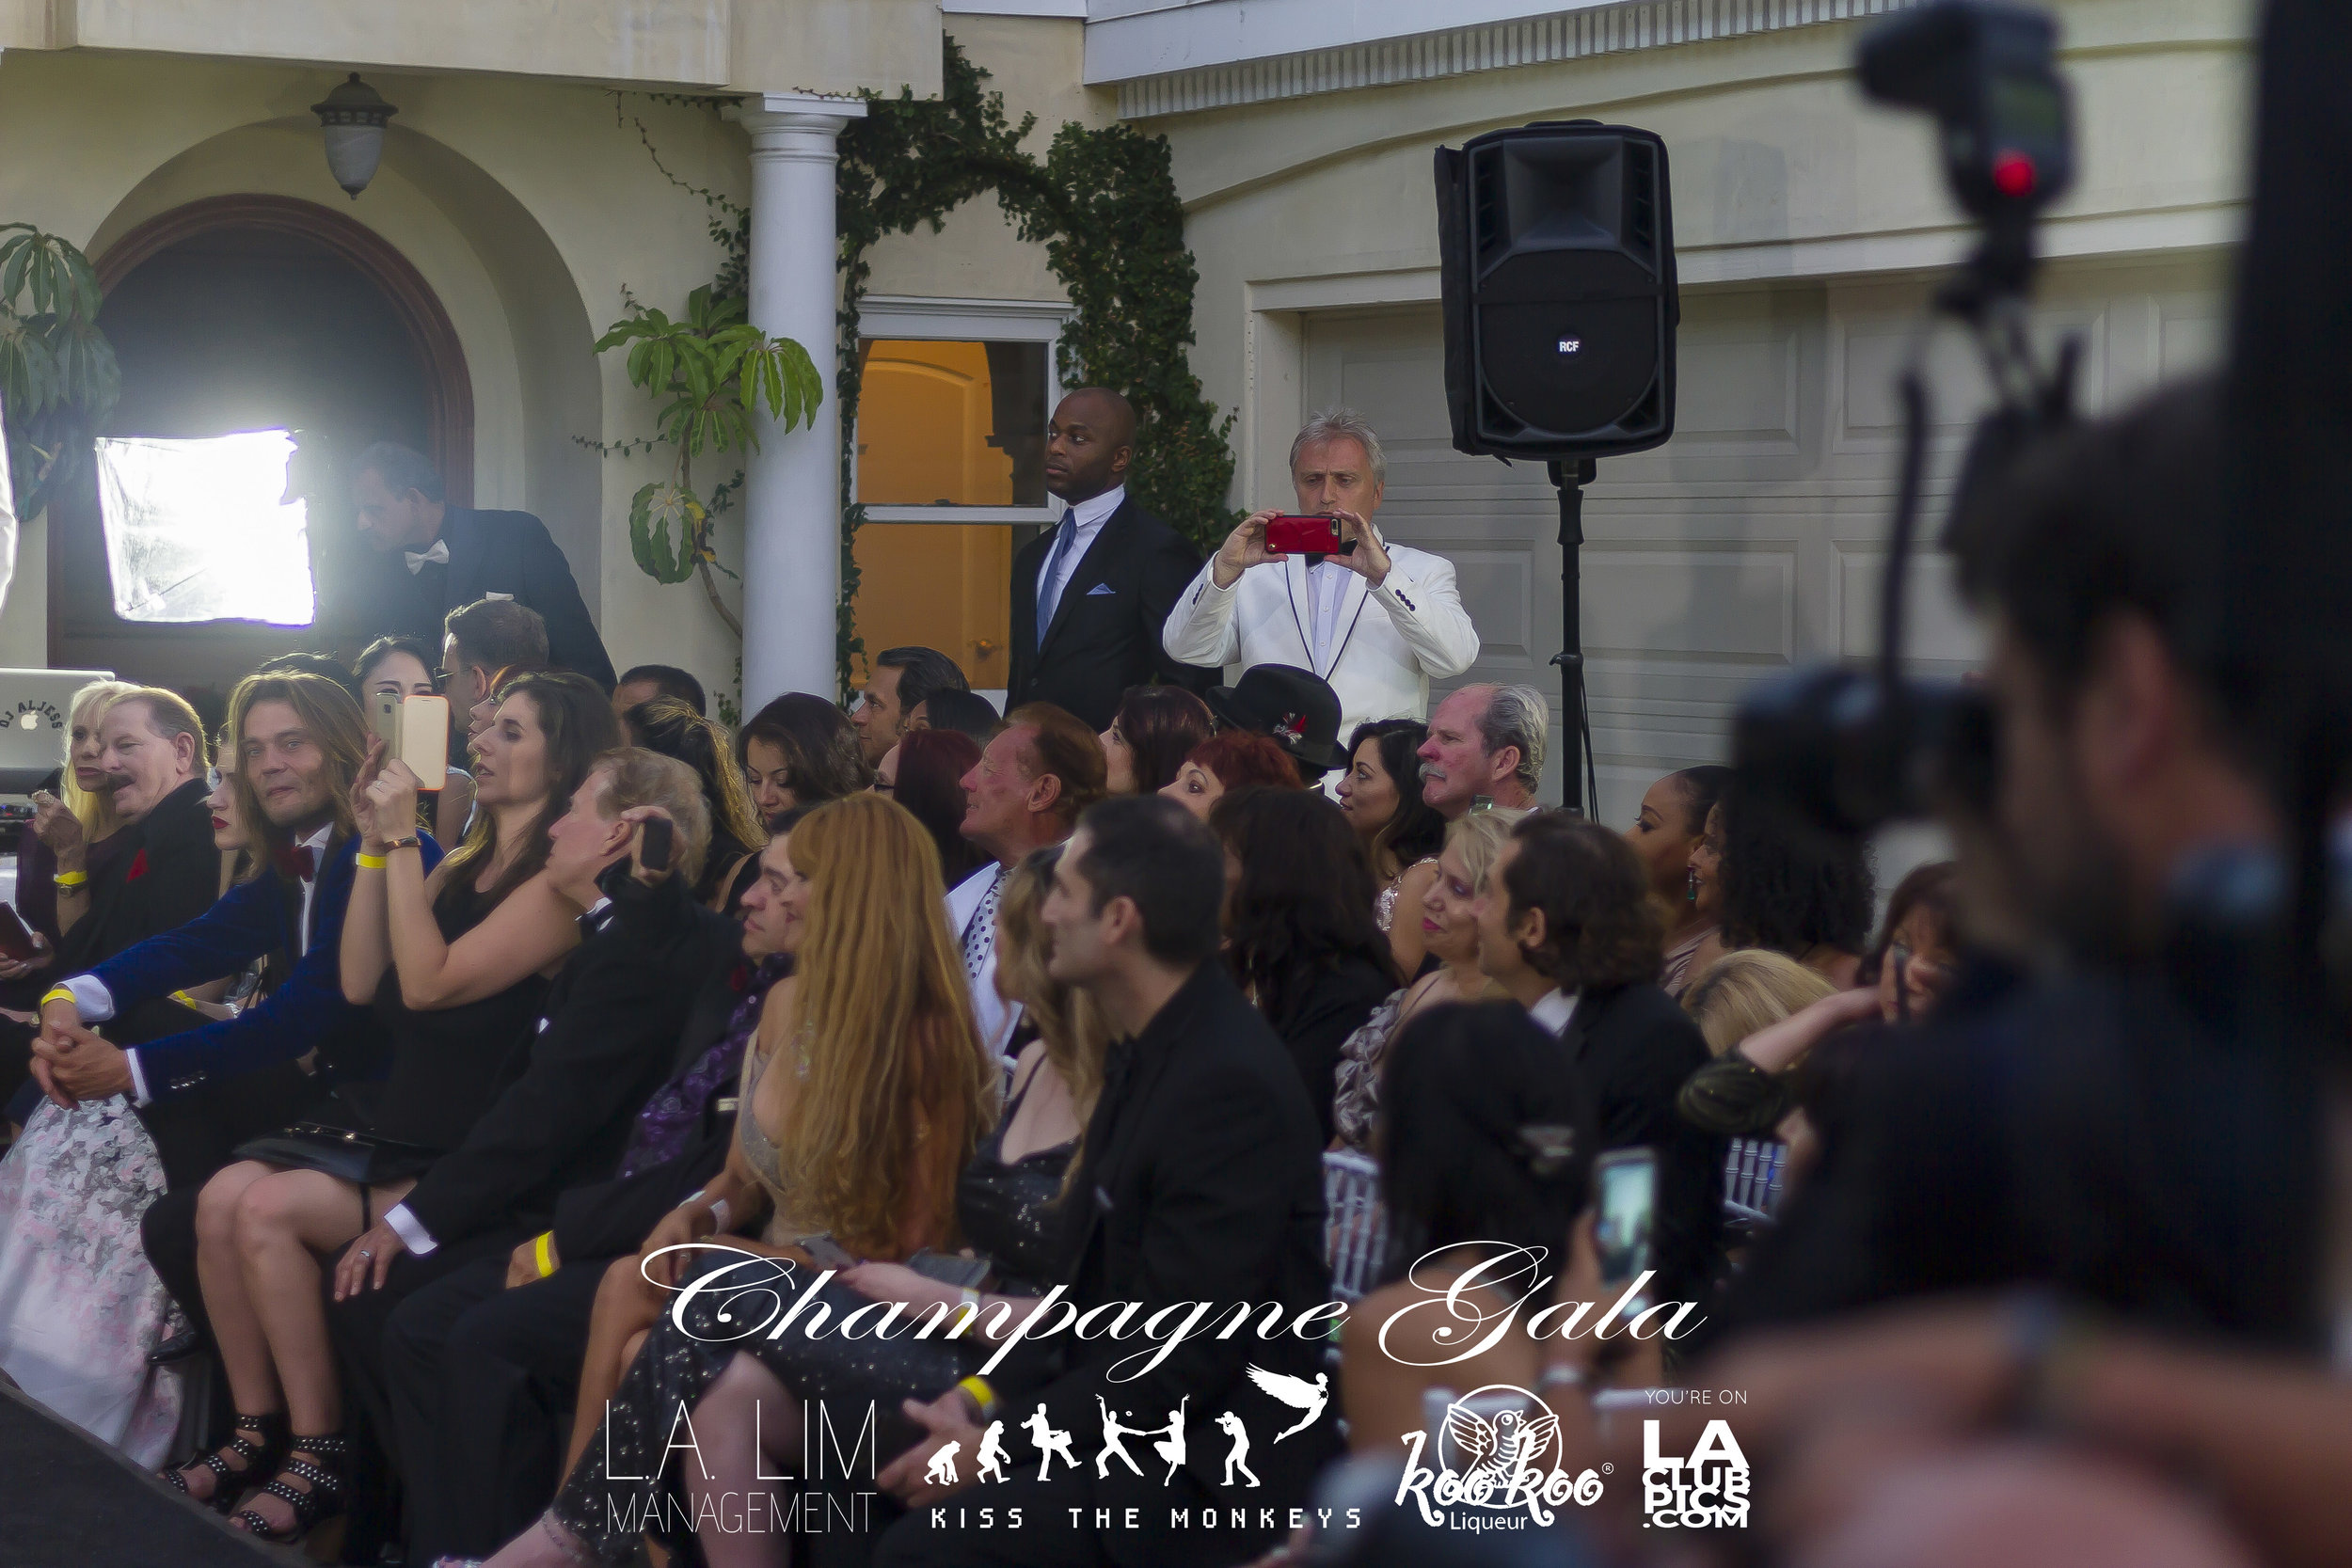 Kiss The Monkeys - Champagne Gala - 07-21-18_212.jpg